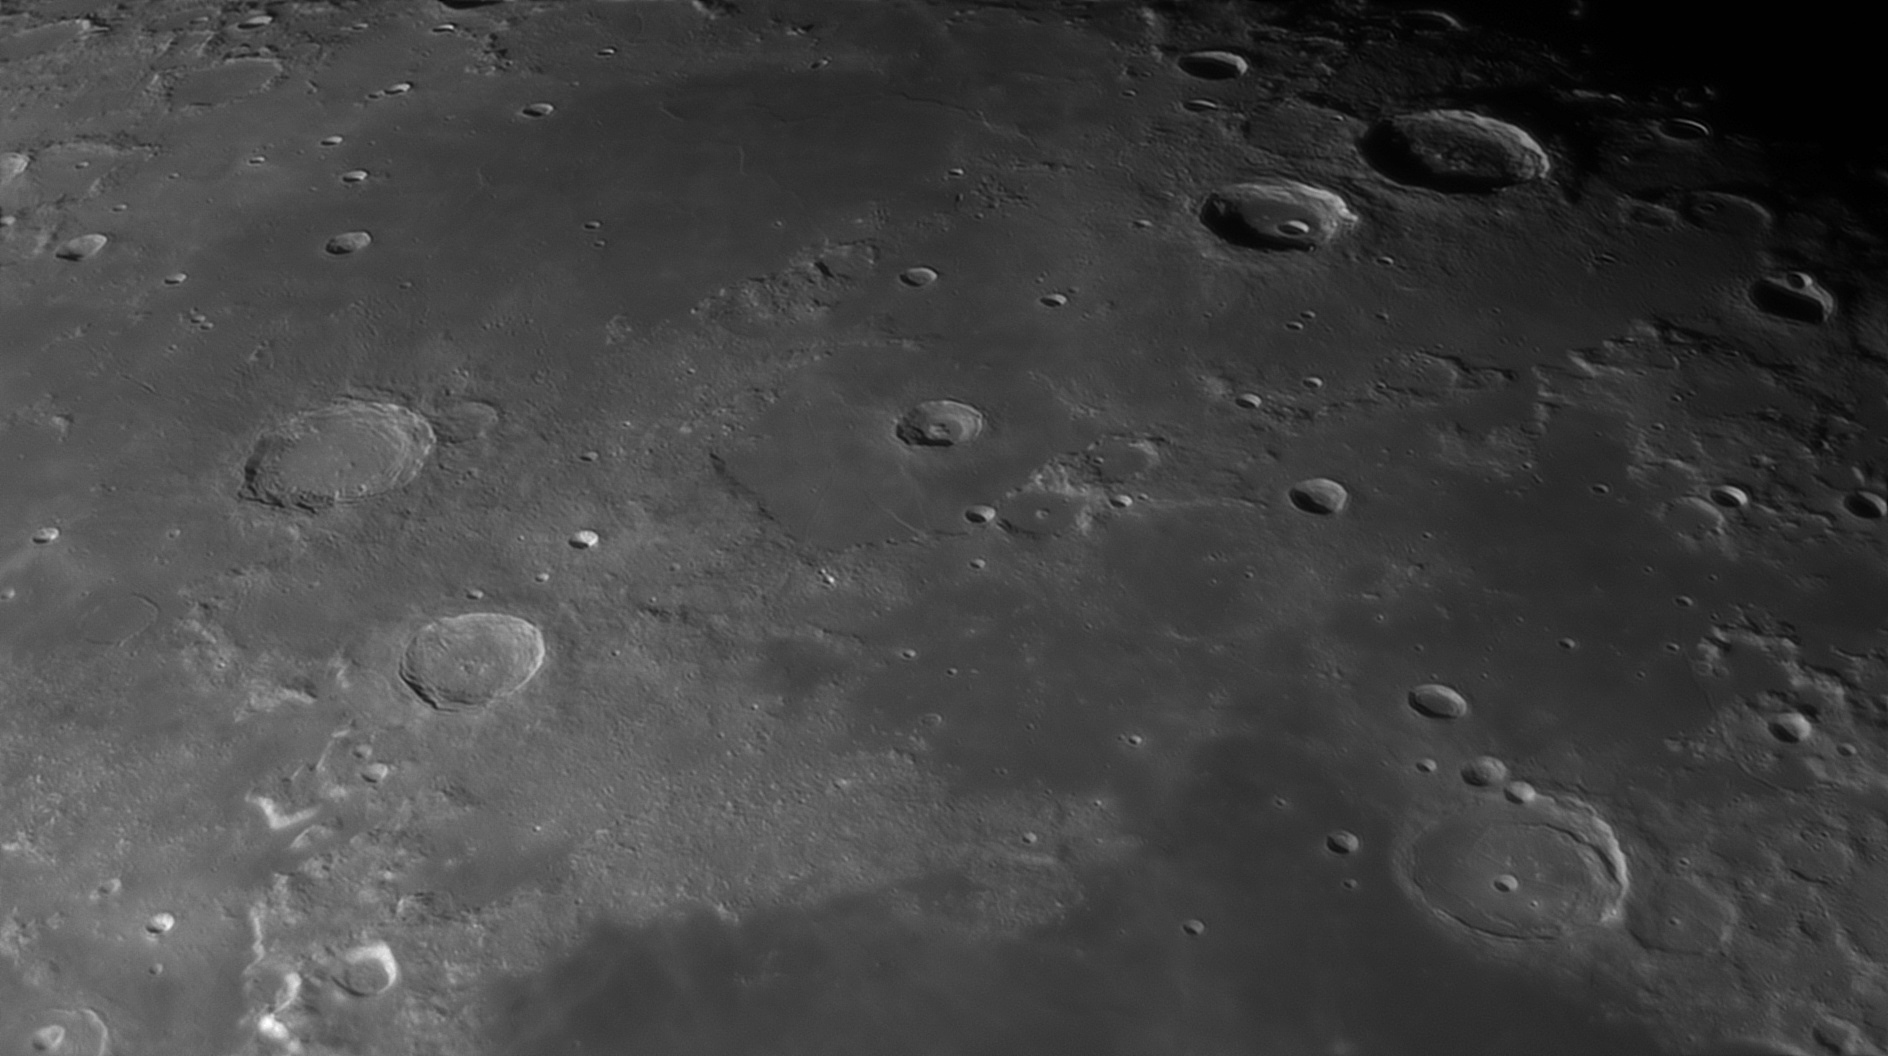 5e56c97770d7f_Moon_060005_120220_ZWOASI290MM_IR_742nm_AS_P30_lapl4_ap1349_AI_Deconvolution_5.jpg.b4e7f6f6a5cd8898aebedf8ccf1b2b04.jpg